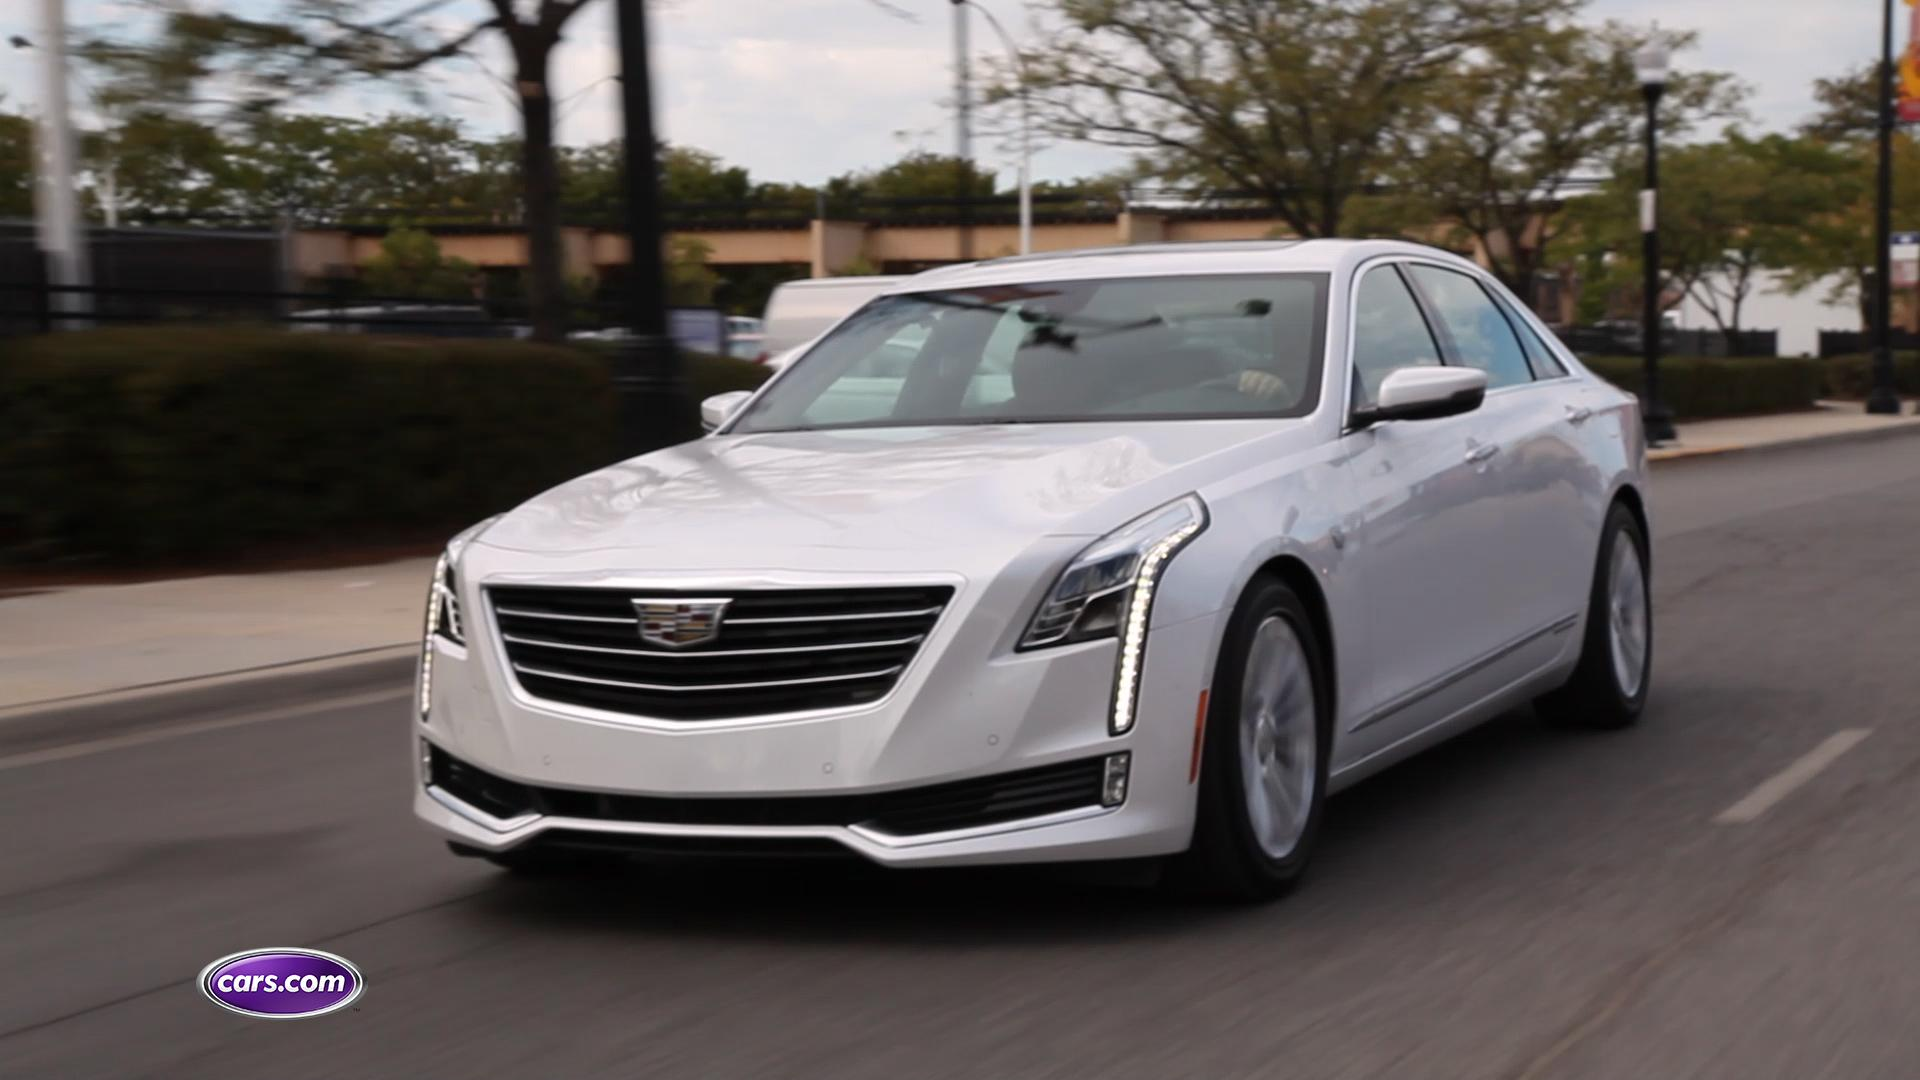 Video: 2017 Cadillac CT6 Plug-In Hybrid — Cars.com